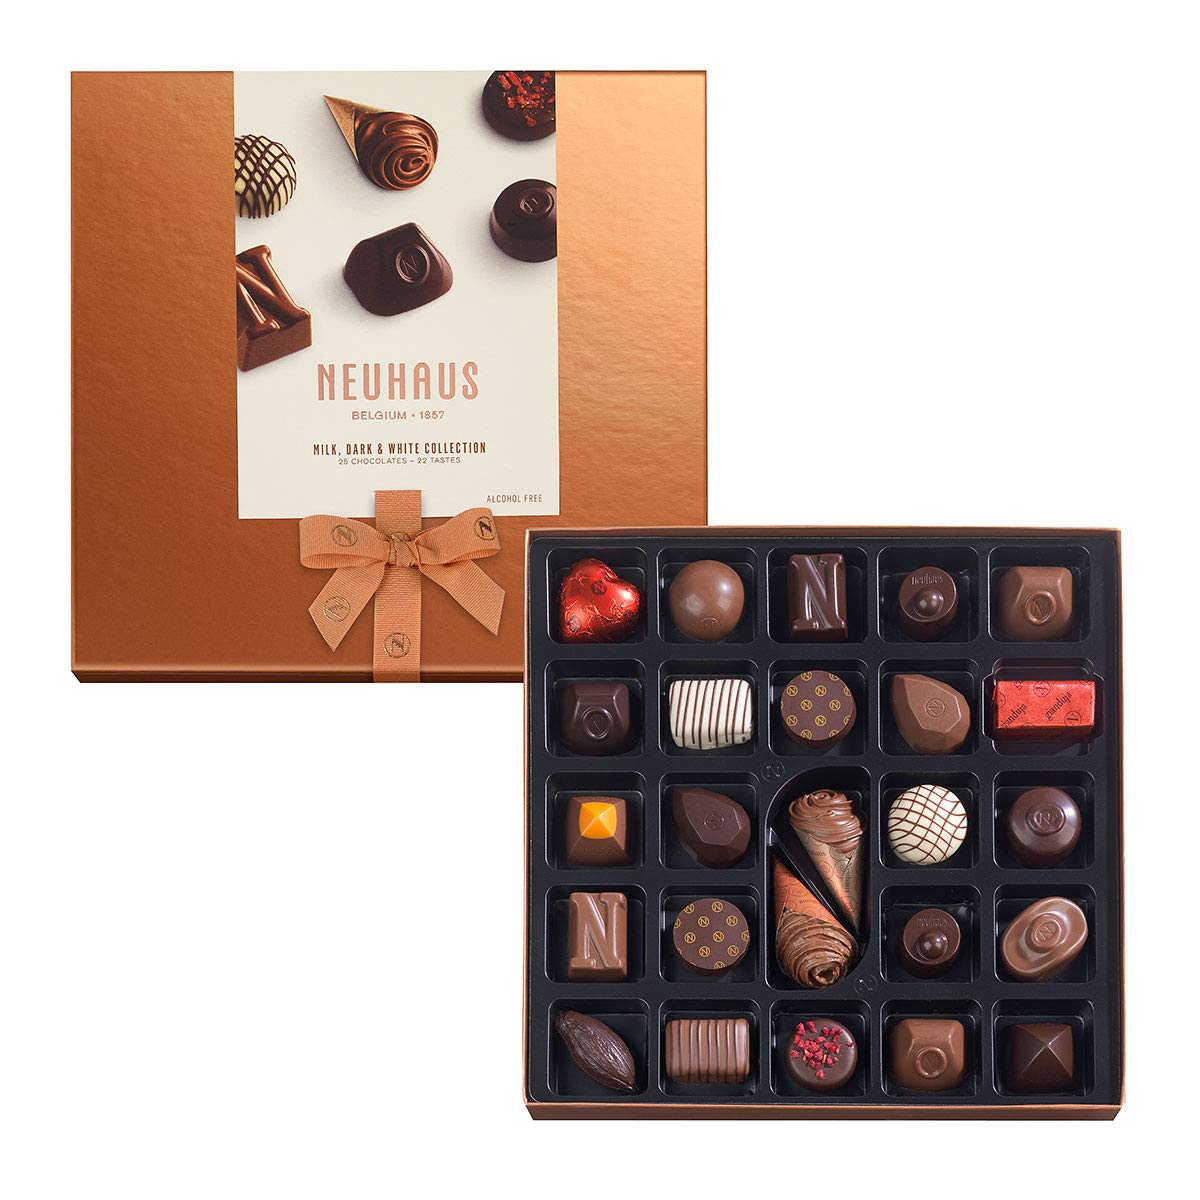 Neuhaus Belgian Chocolate Classic Discovery Collection (25 pieces) - Gourmet Milk, Dark, and White Chocolate Assortment Box